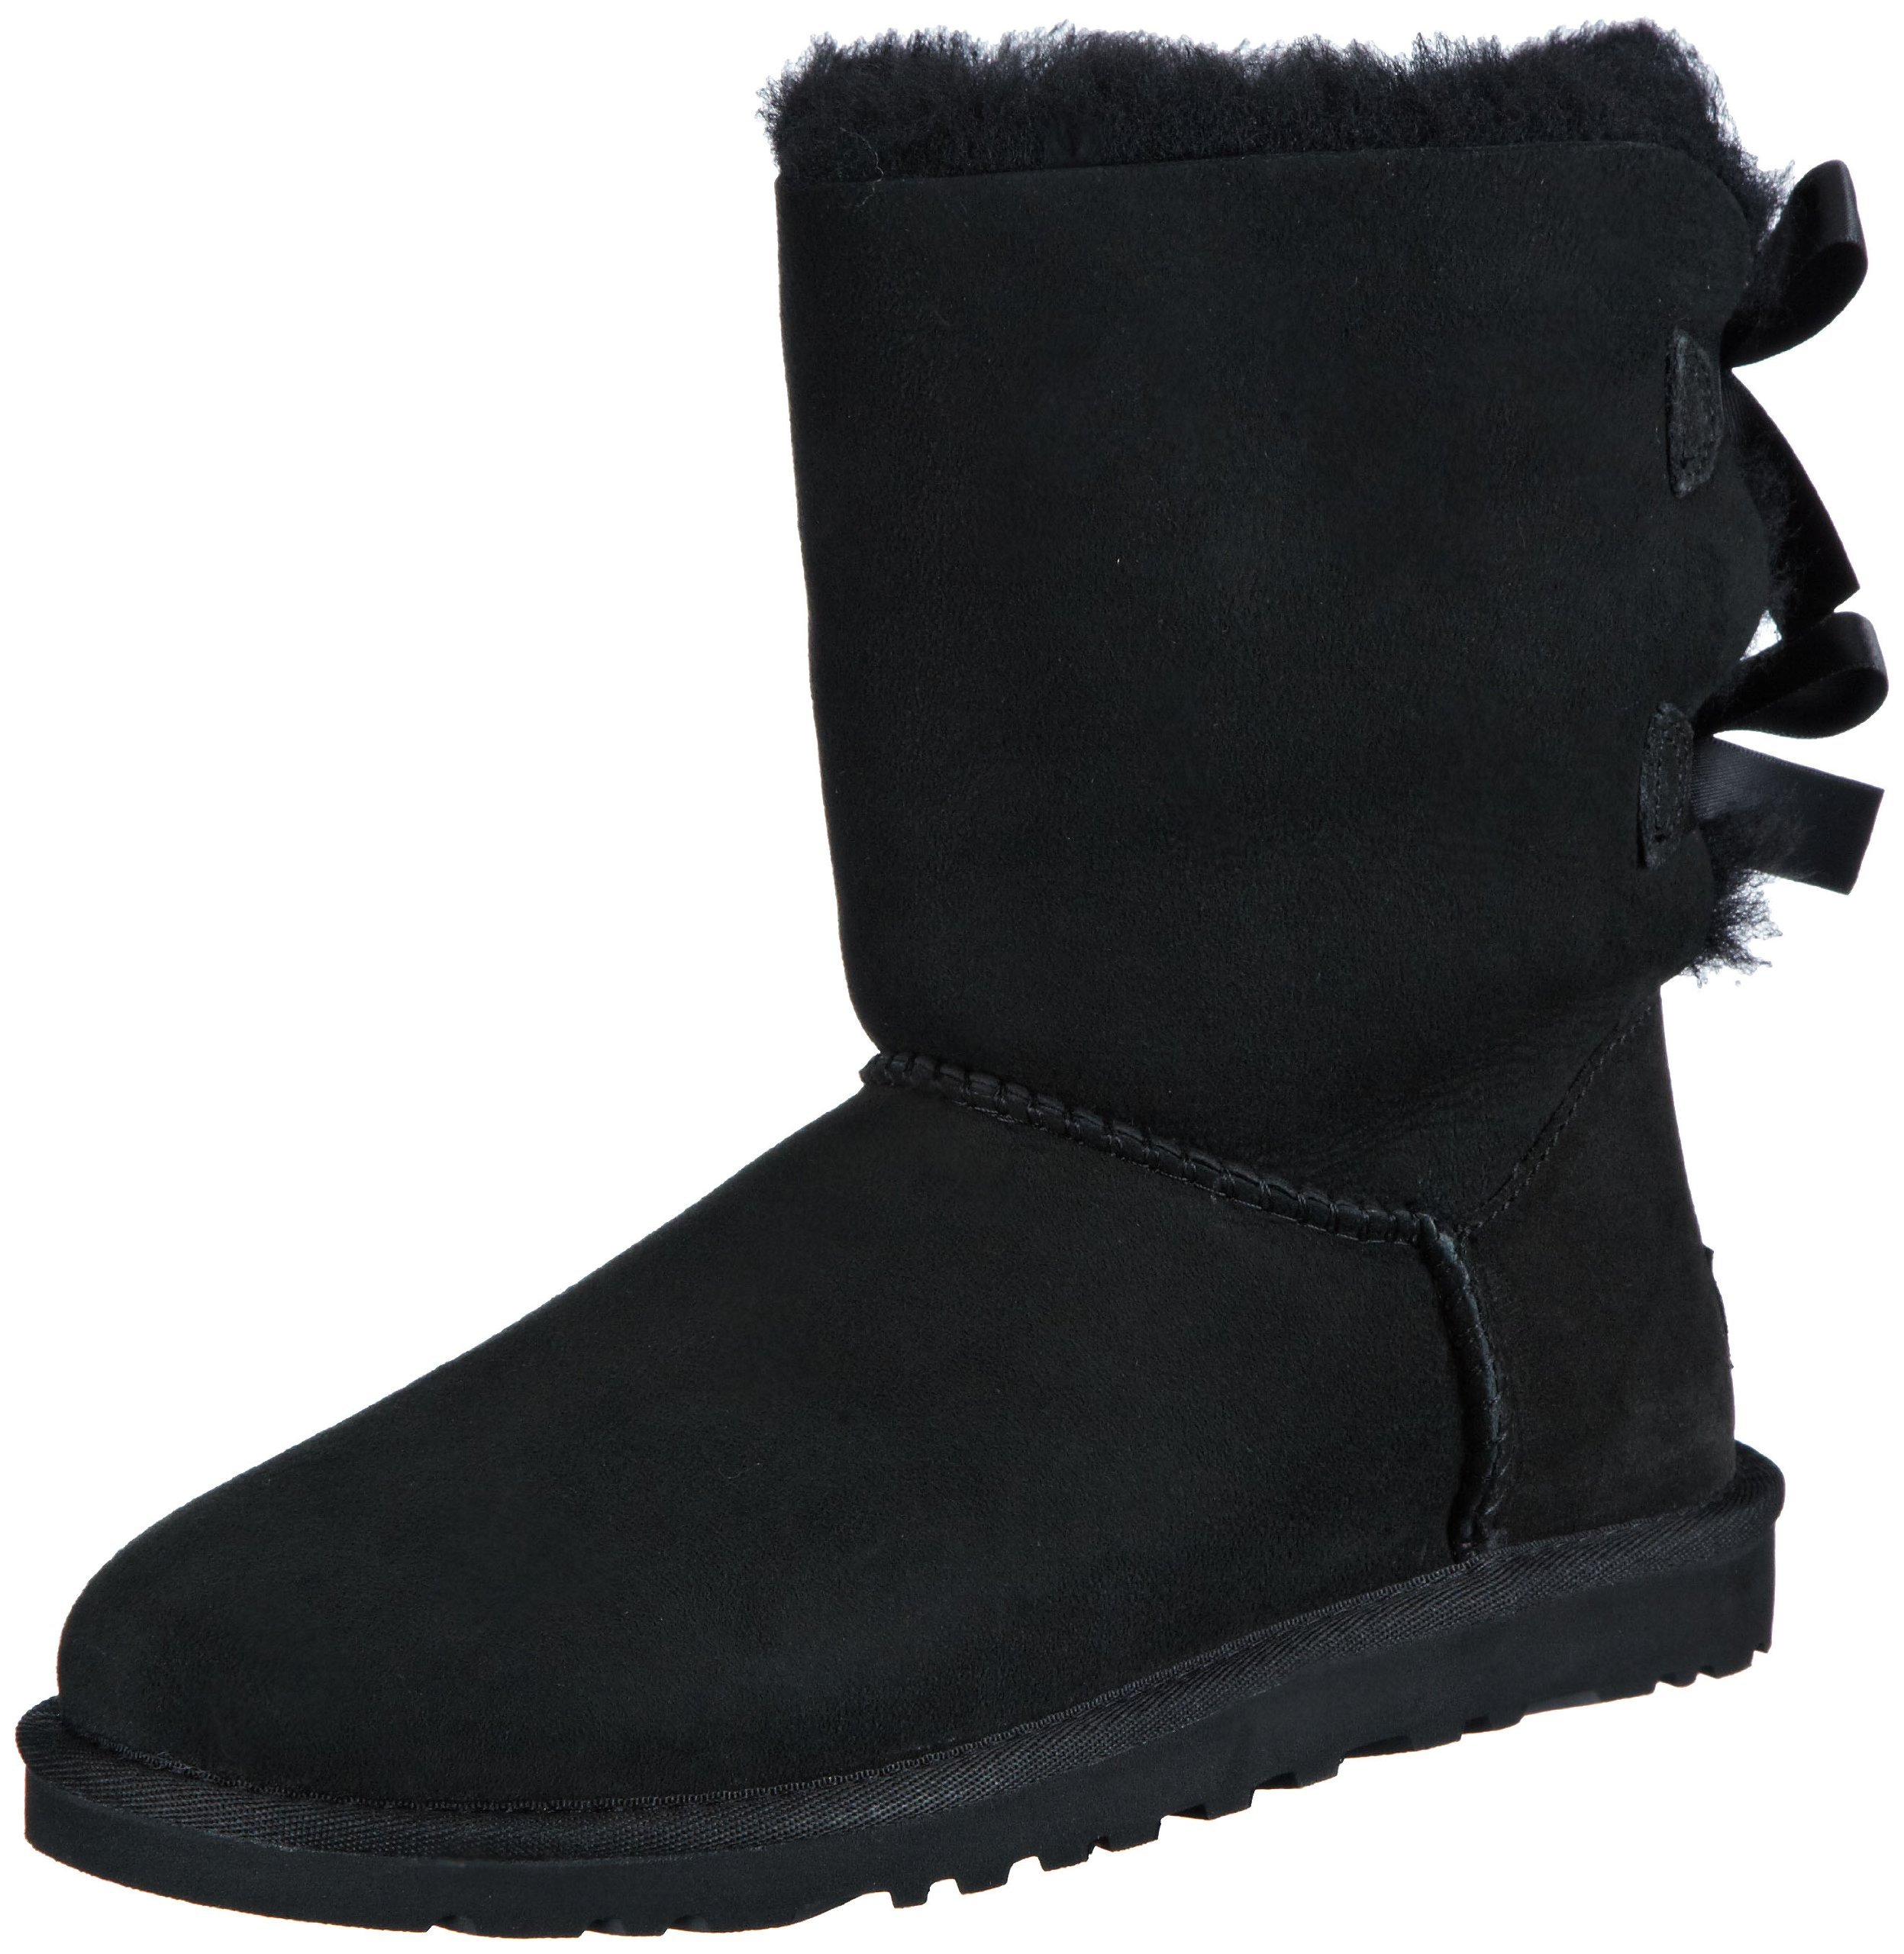 UGG Australia Women's Bailey Bow Boots